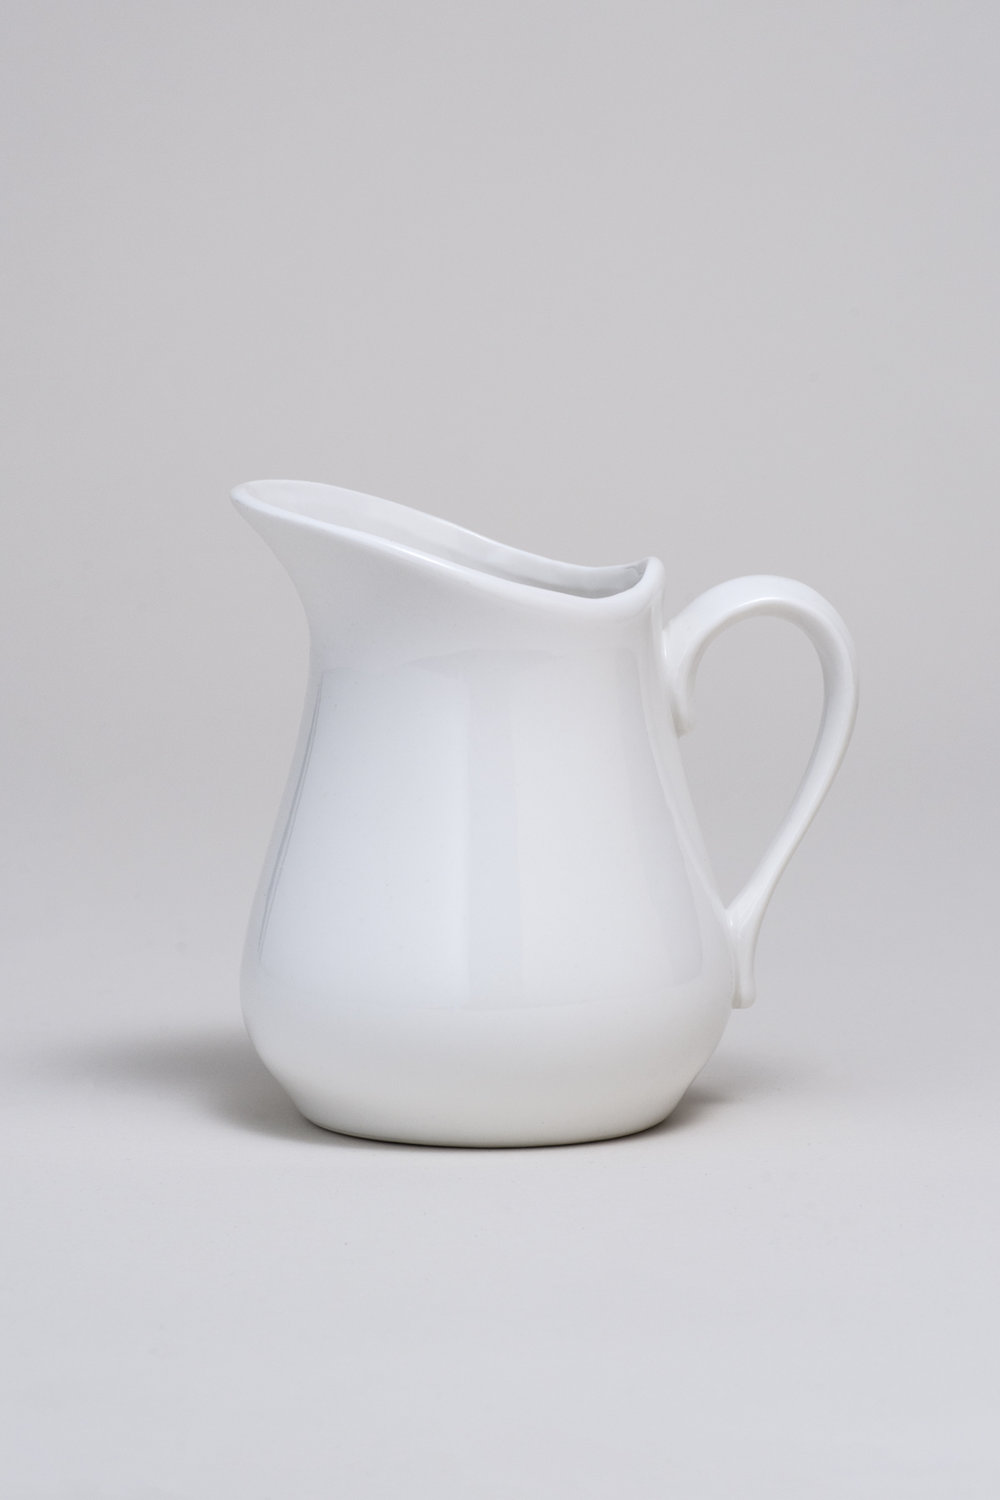 "Porcelain Pitcher 12 oz. Height 4 1/2""  Width 3 1/2""  Top opening 2 5/8""X3"" $2.00"